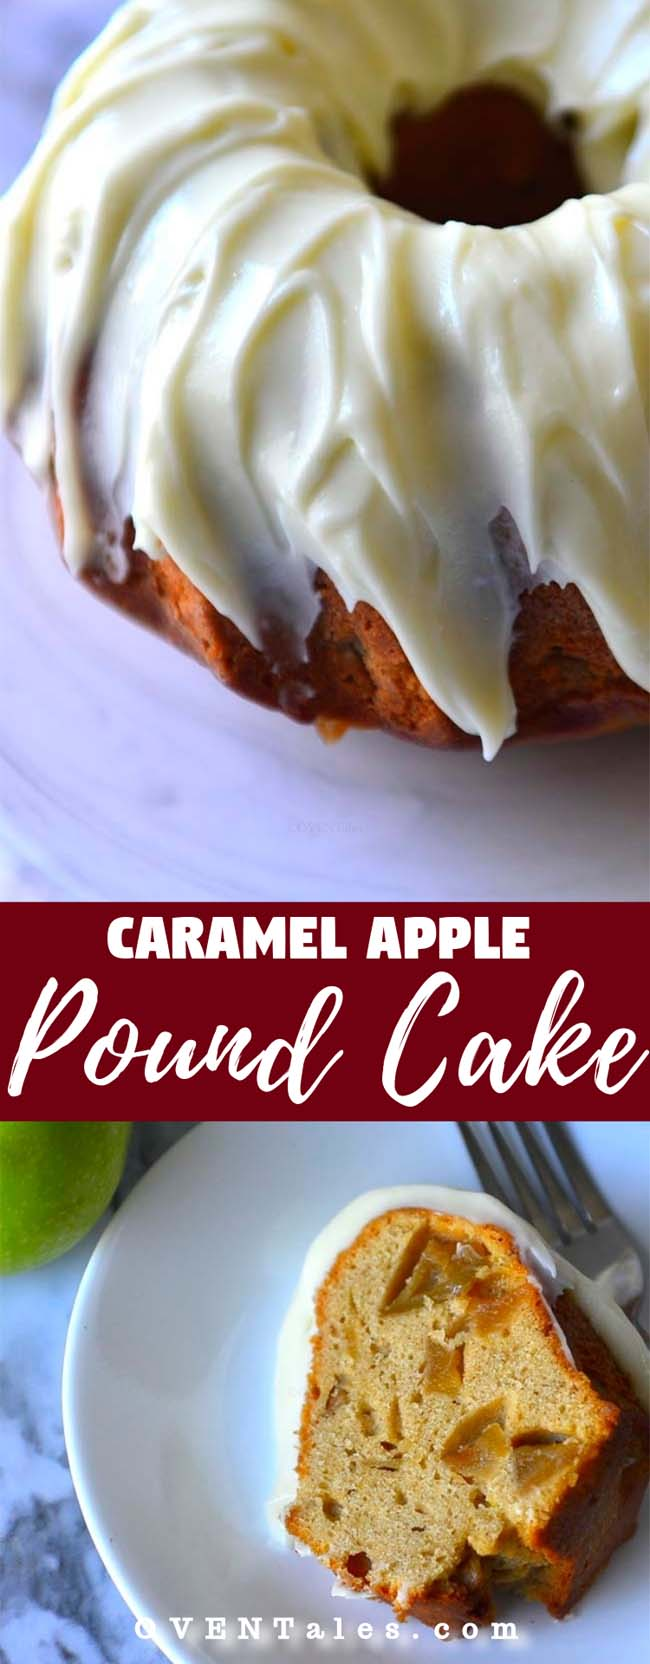 Caramel Apple Pound Cake with tangy cream cheese glaze